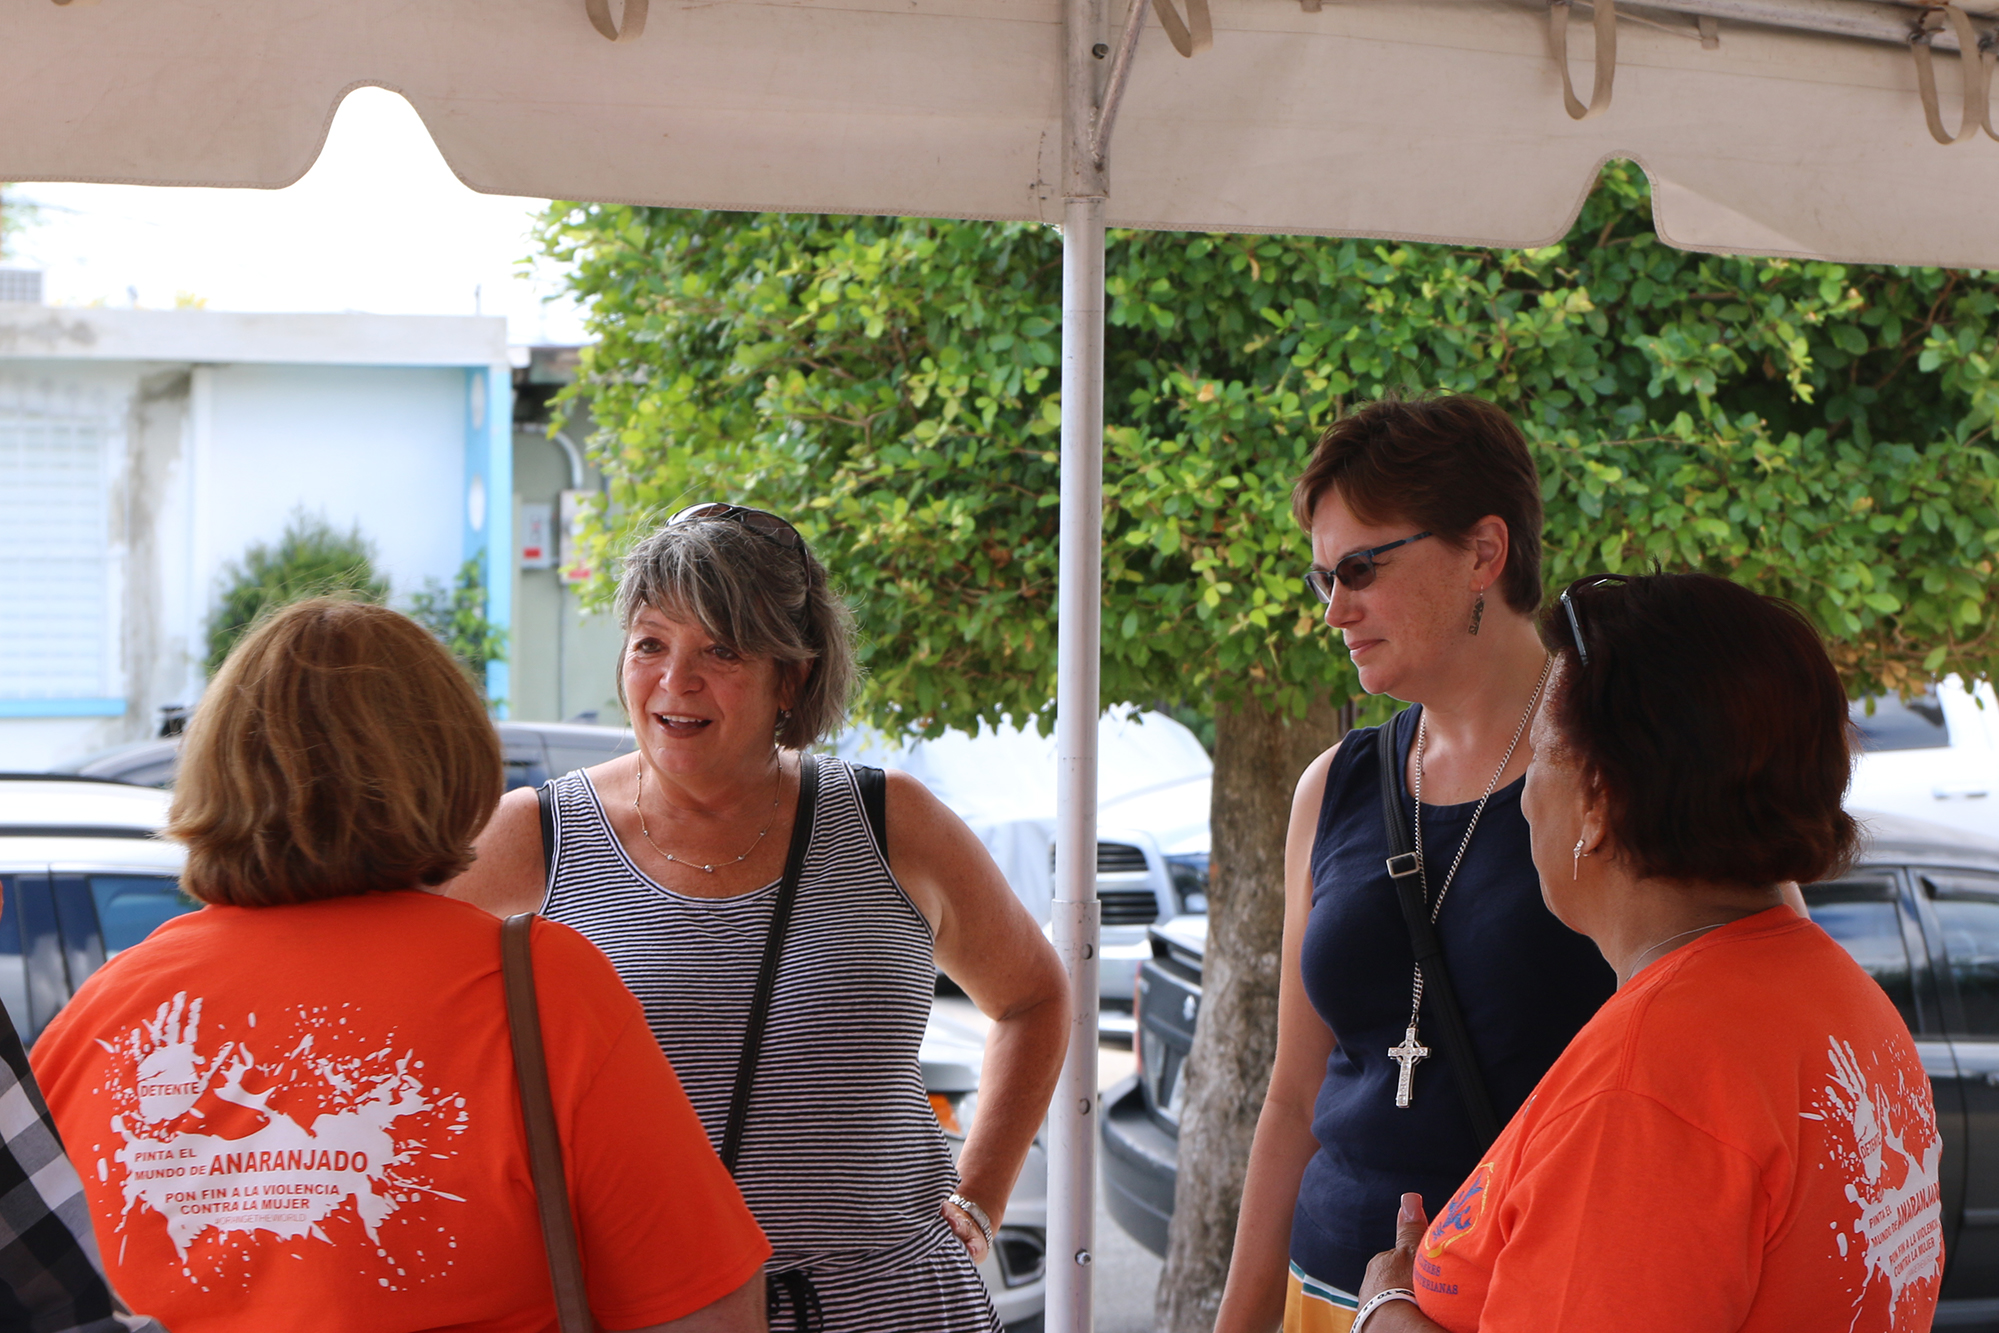 PDA Director, Rev. Dr. Laurie Kraus and Rev. Cindy Kohlmann, Co-Moderator of the 223rd General Assembly (2018) of the PC(USA), meet with volunteers at Bayamón Presbyterian Church. Photo by Rick Jones.